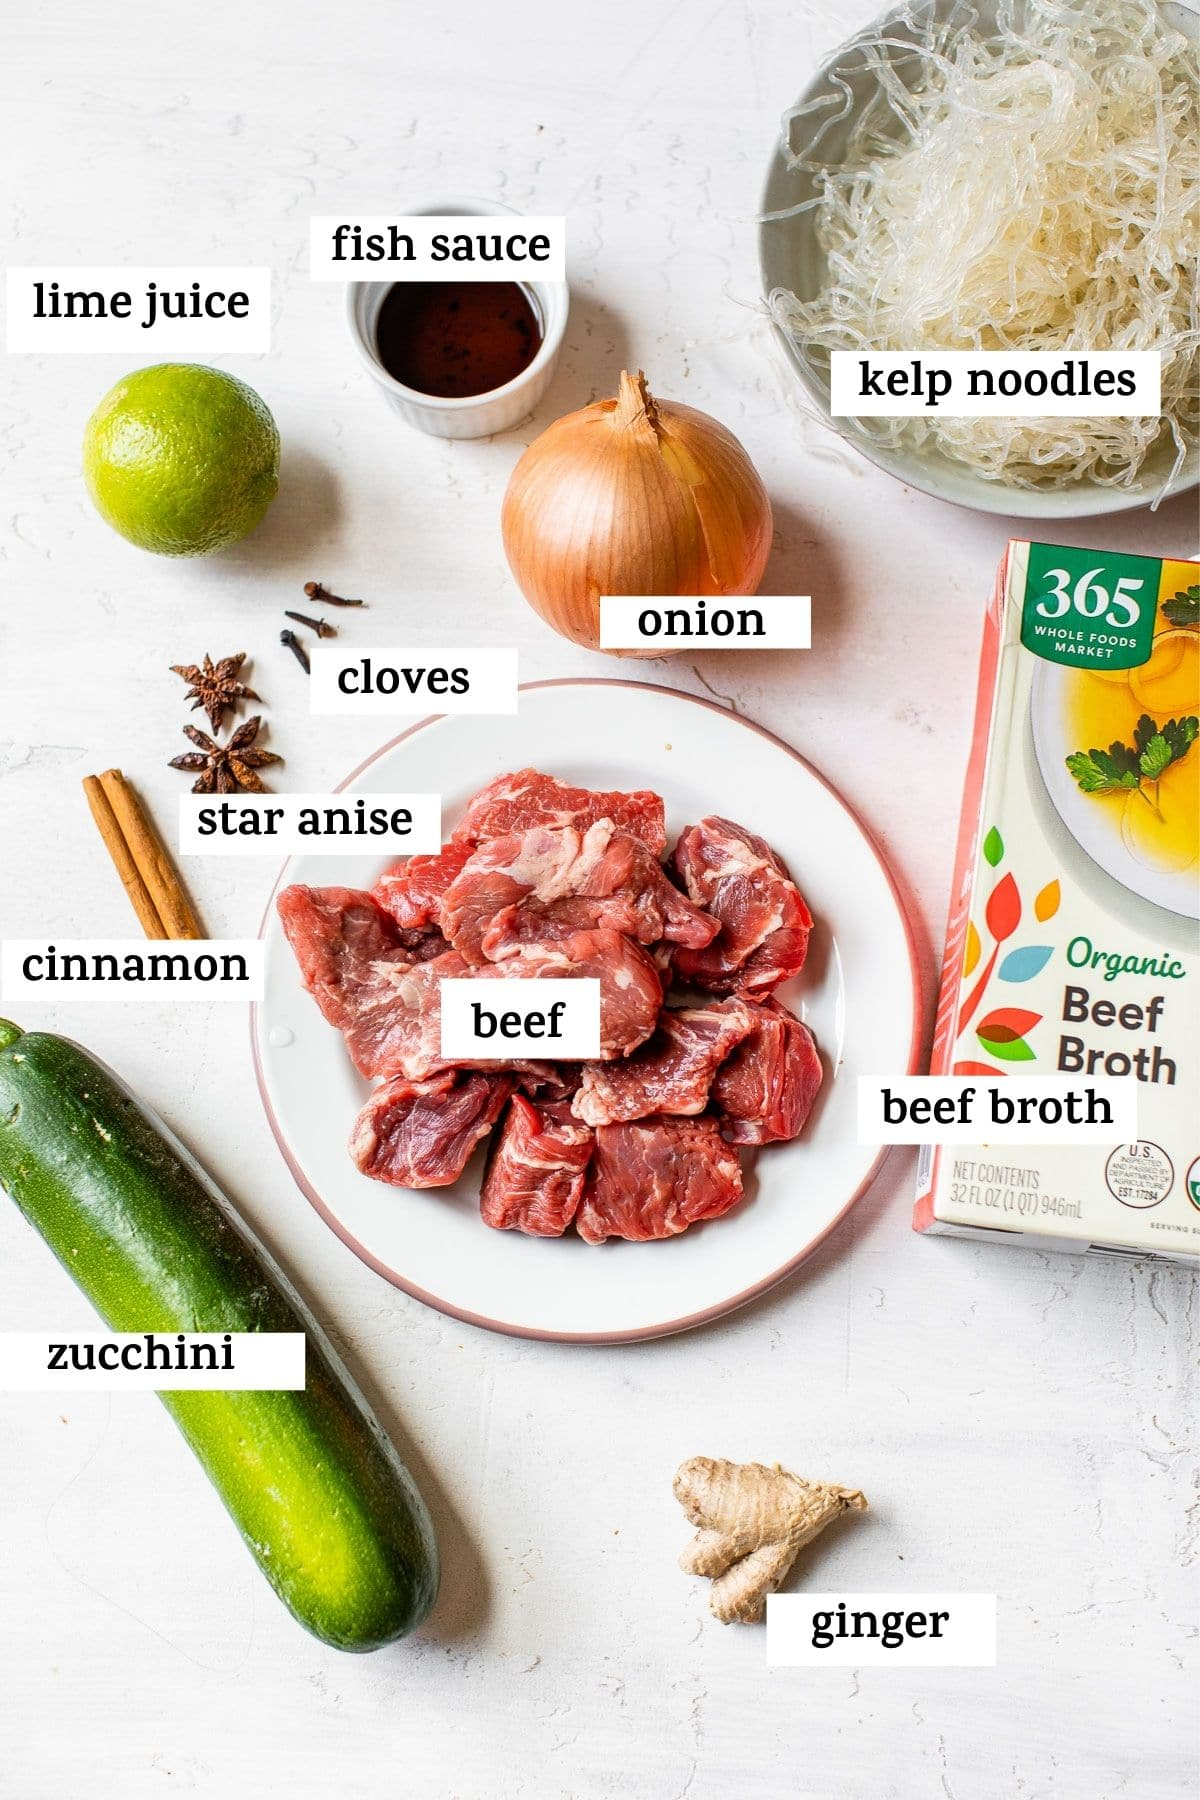 ingredients with text